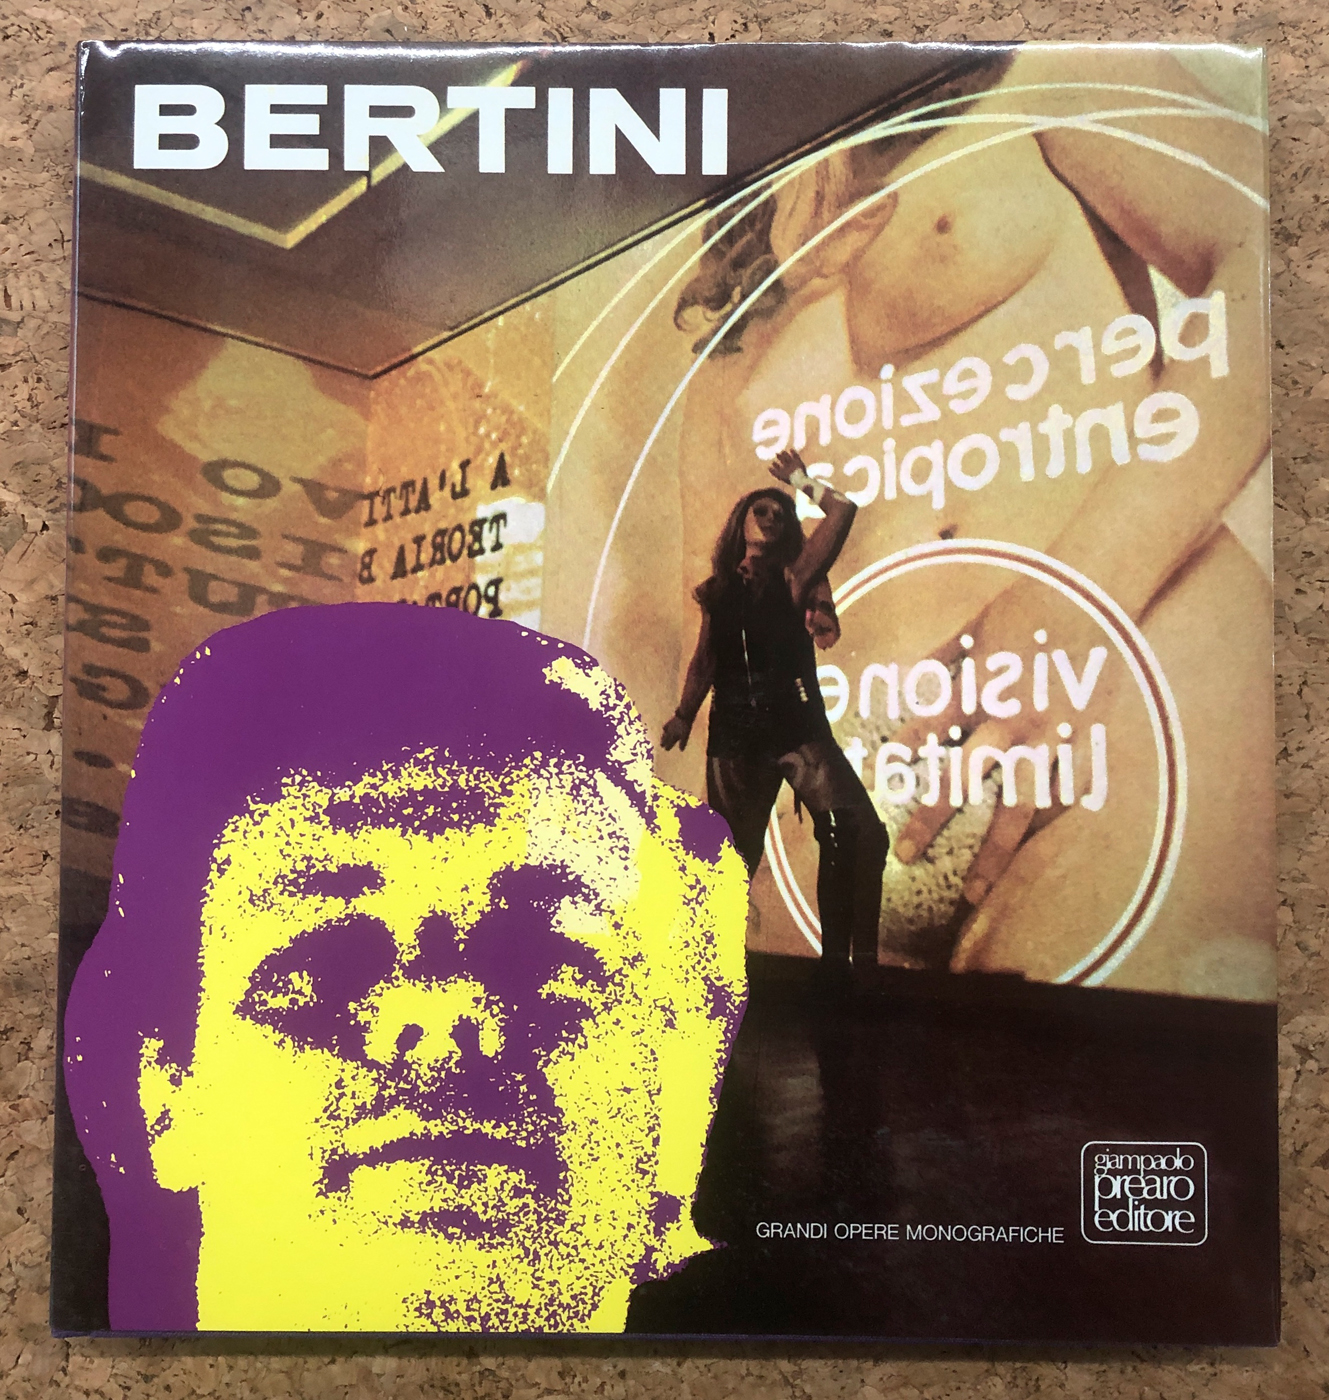 GIANNI BERTINI - Gianni Bertini, 2007